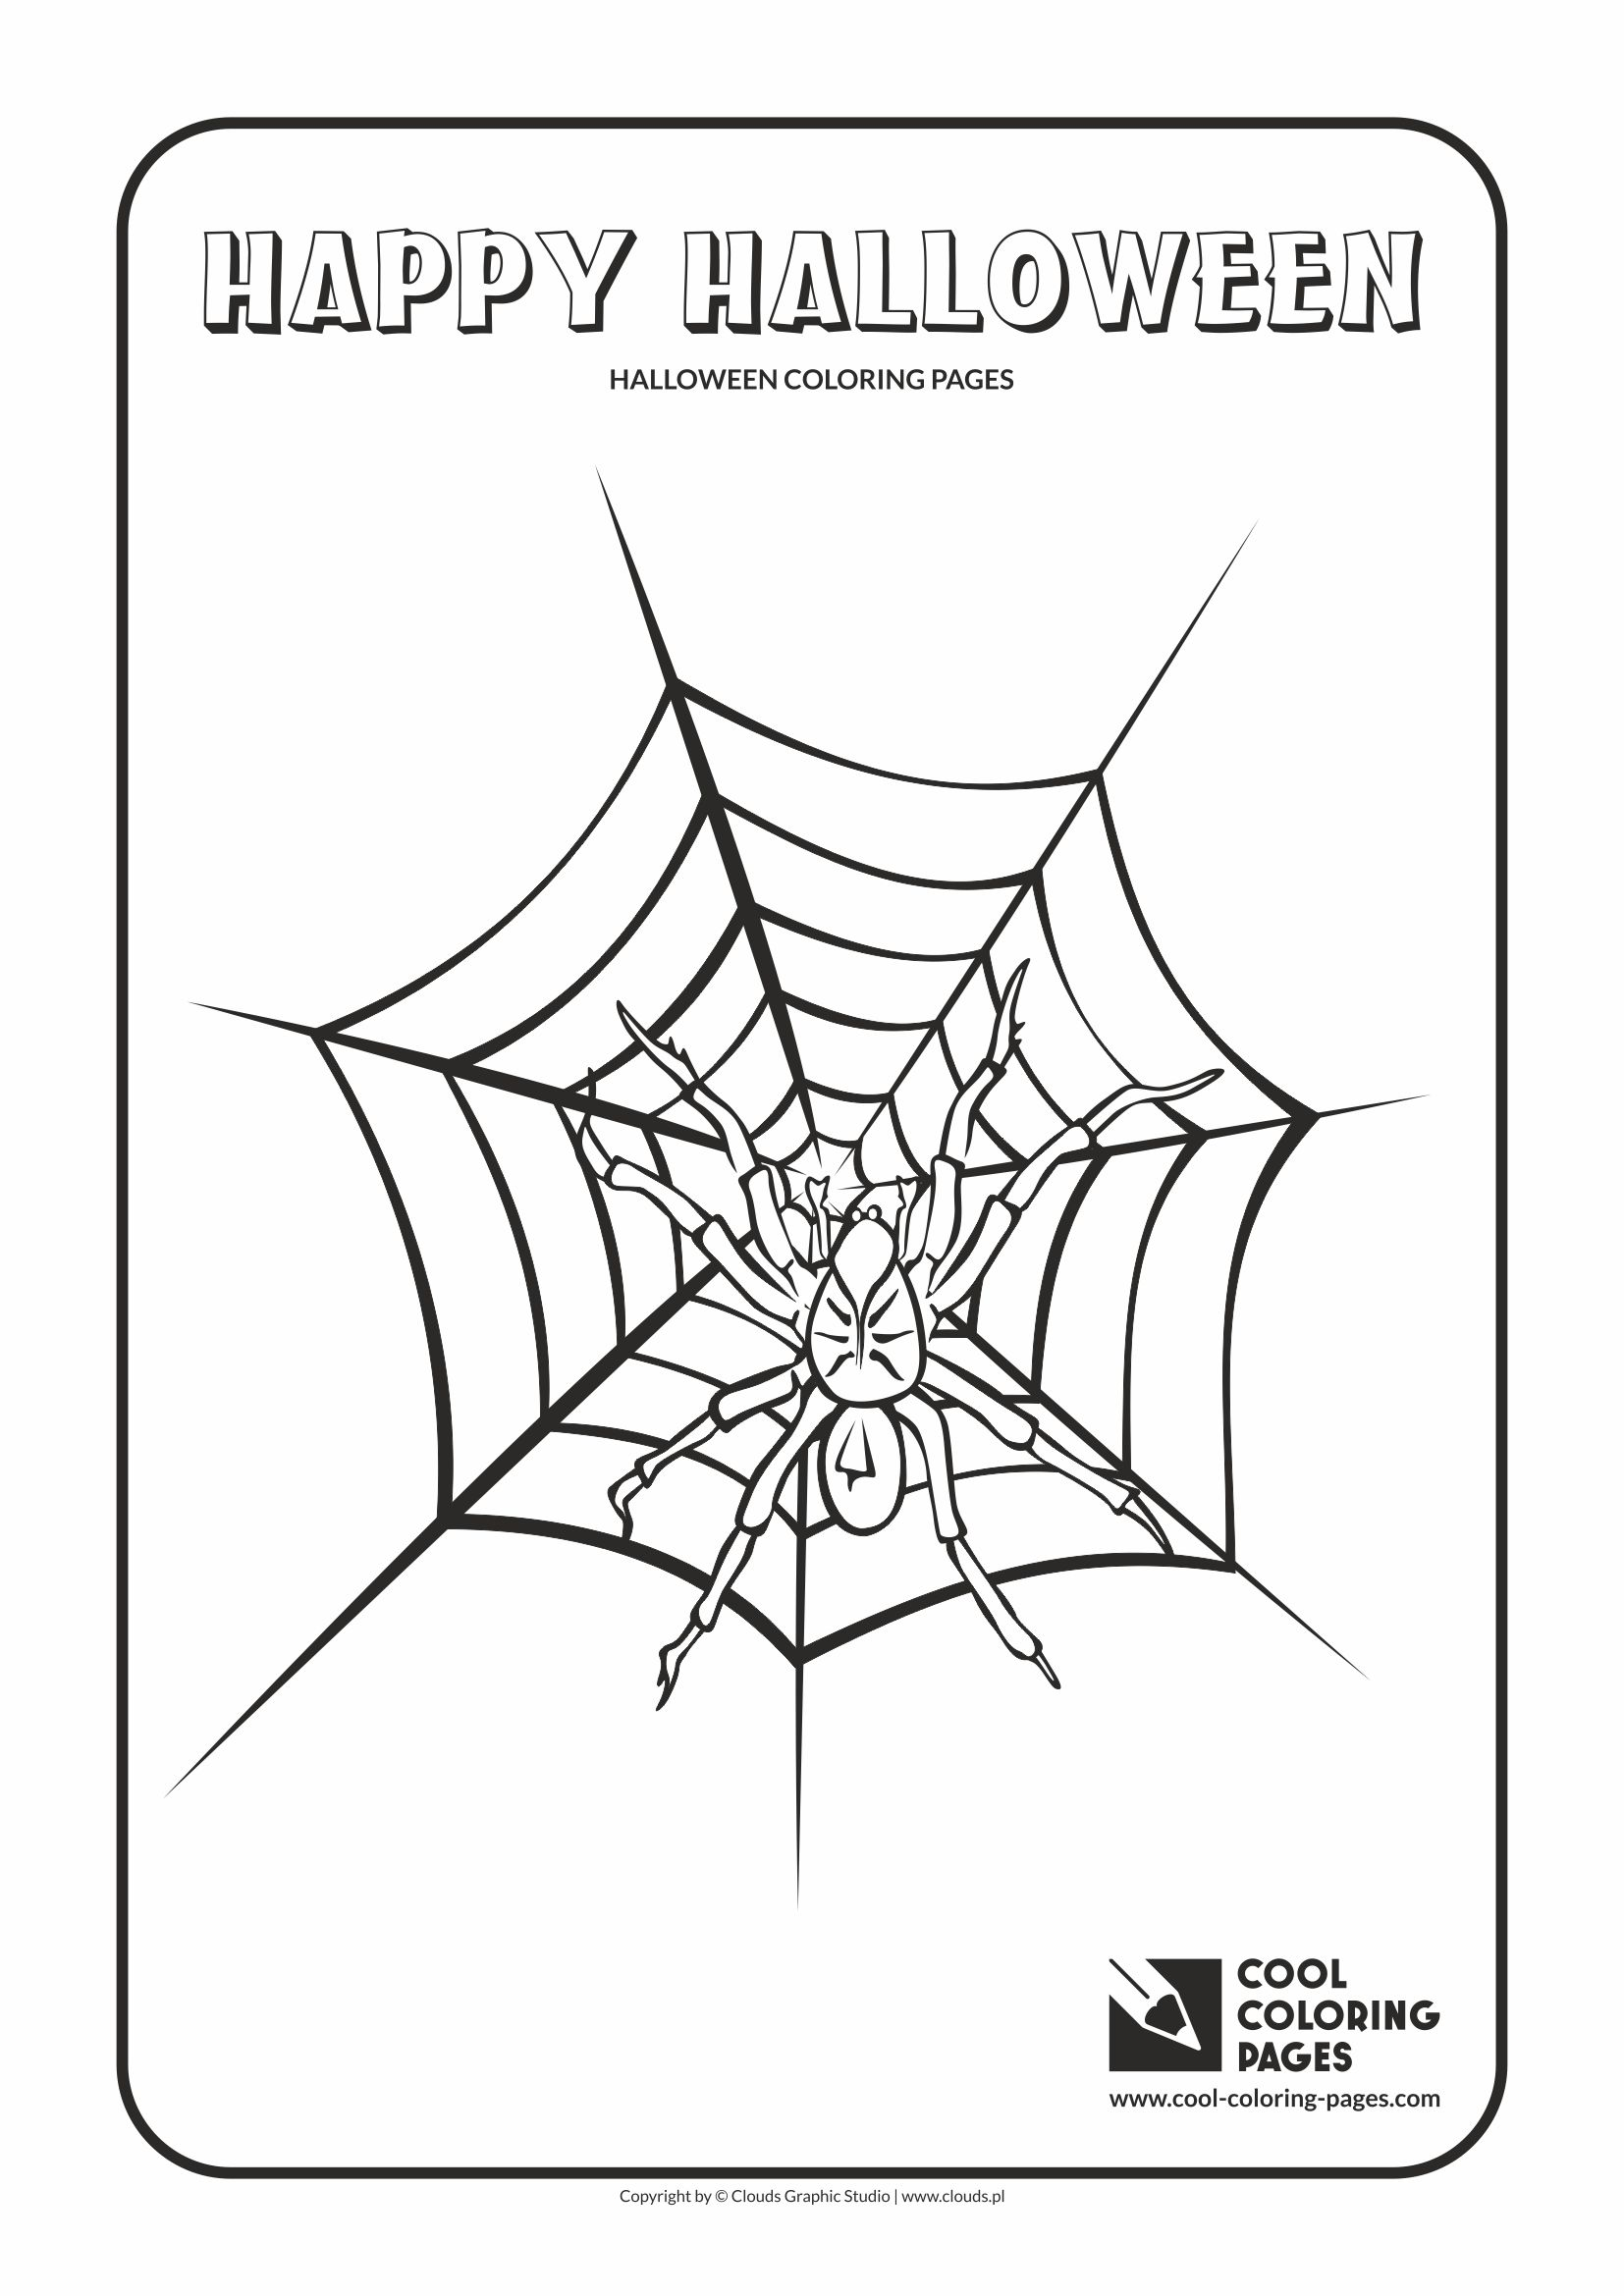 cool coloring pages holidays halloween spider coloring page with halloween spider